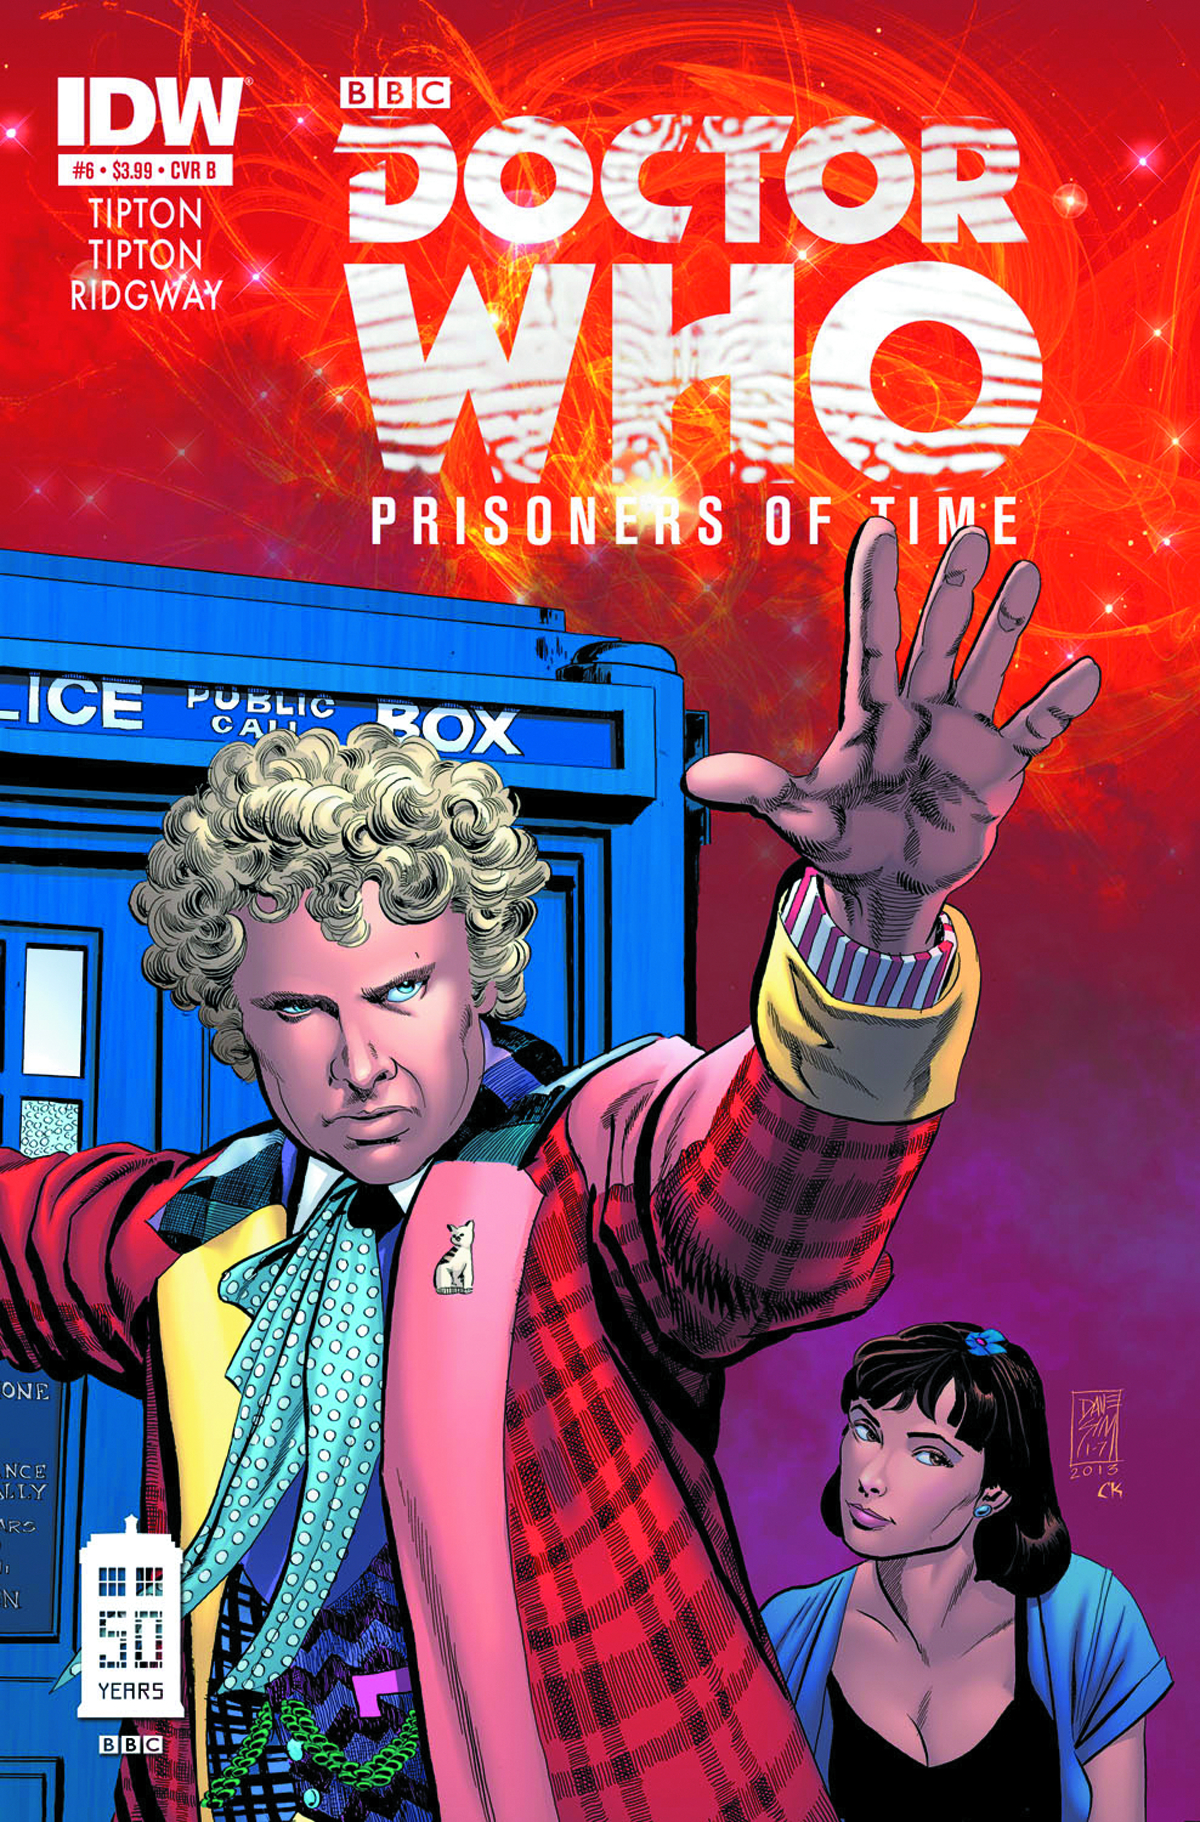 DOCTOR WHO PRISONERS OF TIME #6